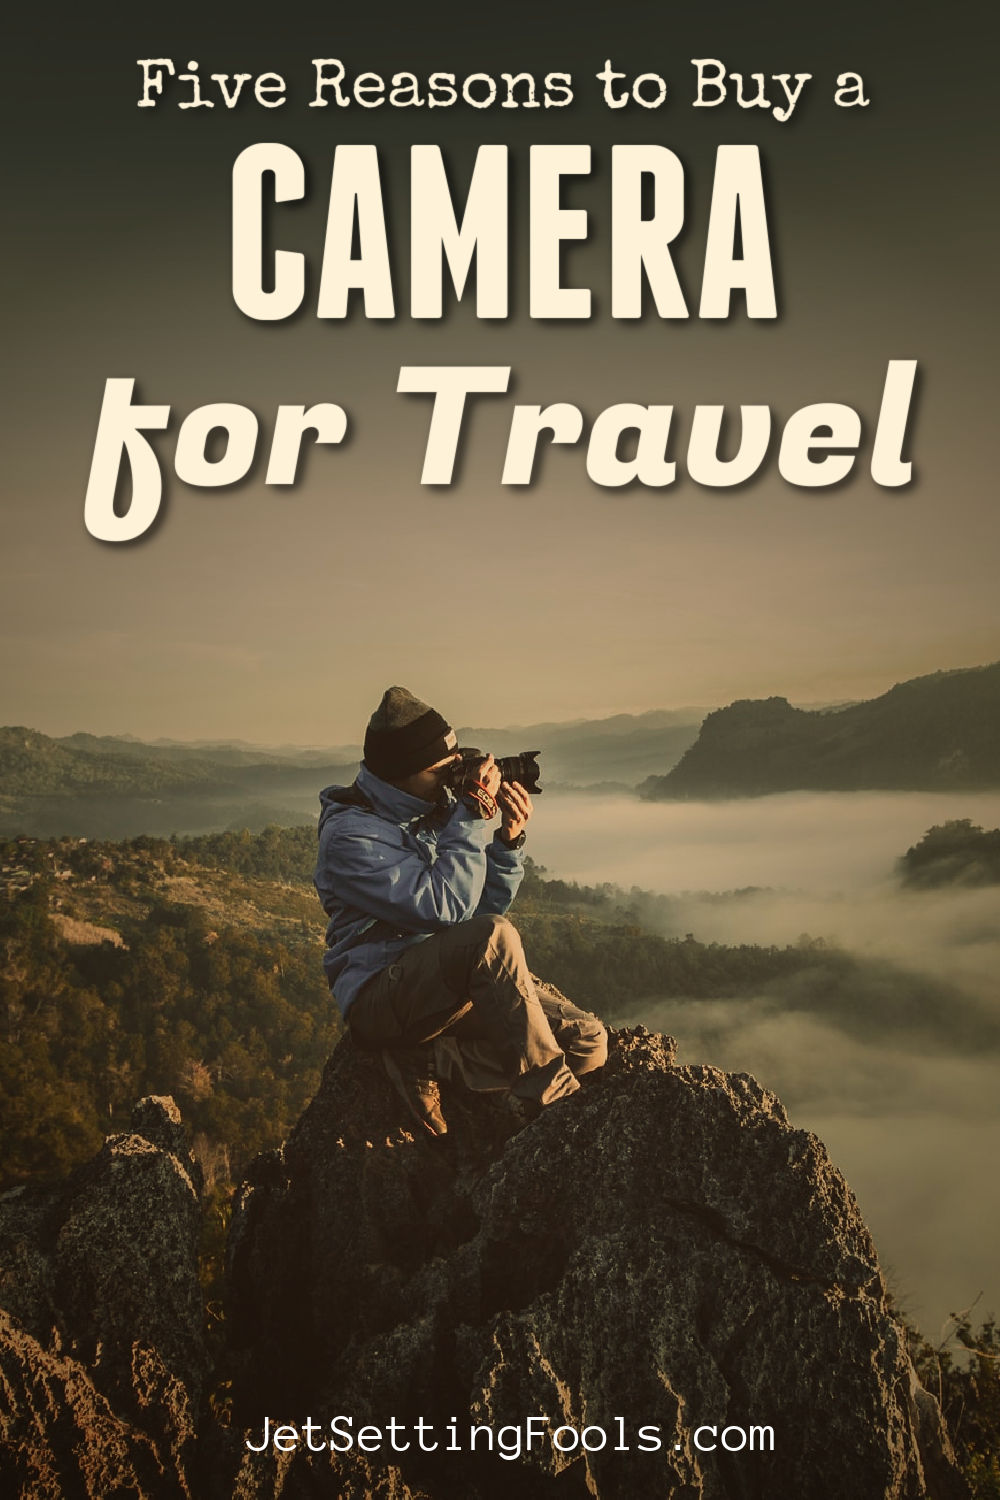 Reasons to Buy a Camera for Travel by JetSettingFools.com